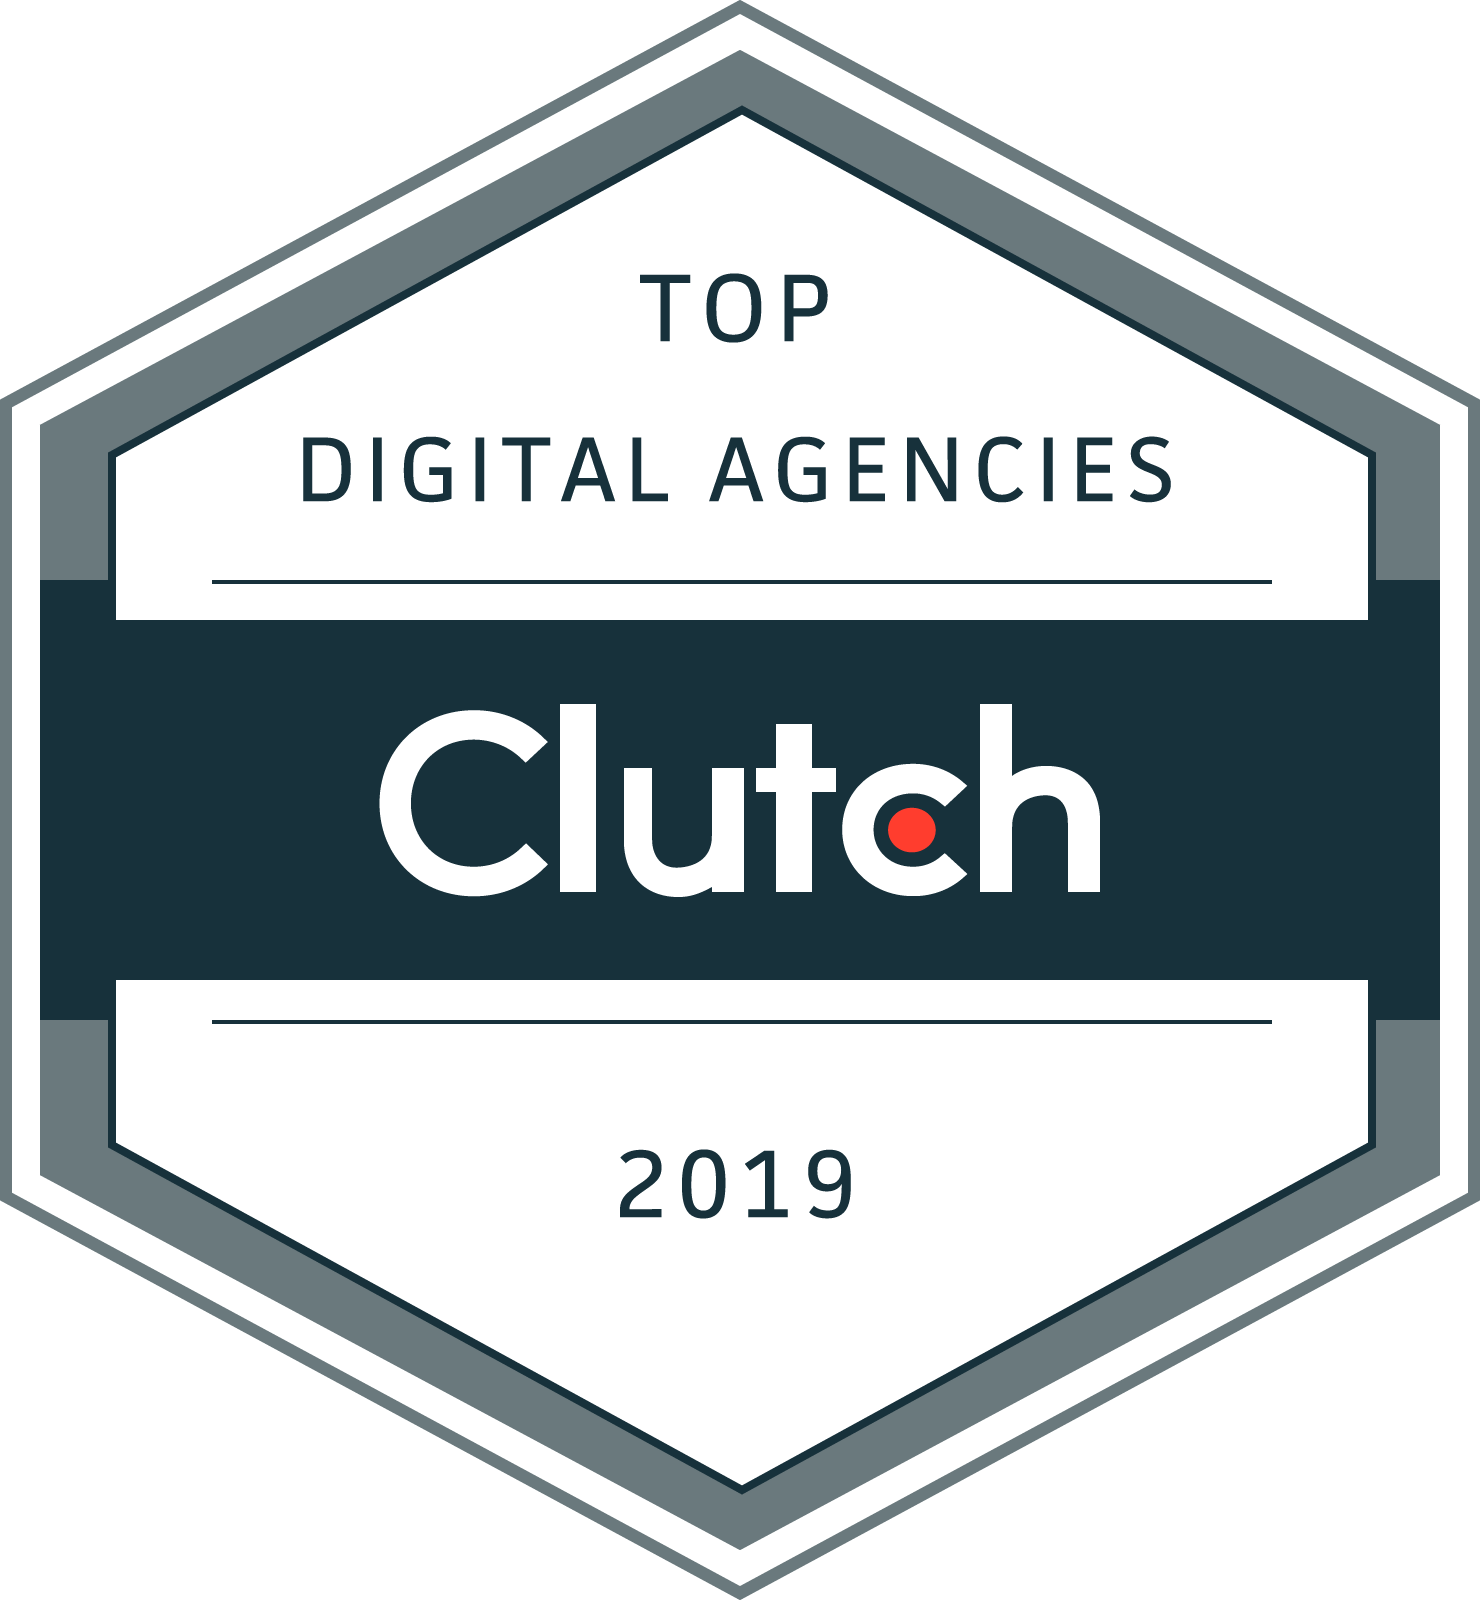 Best Digital Marketing Agencies 2019